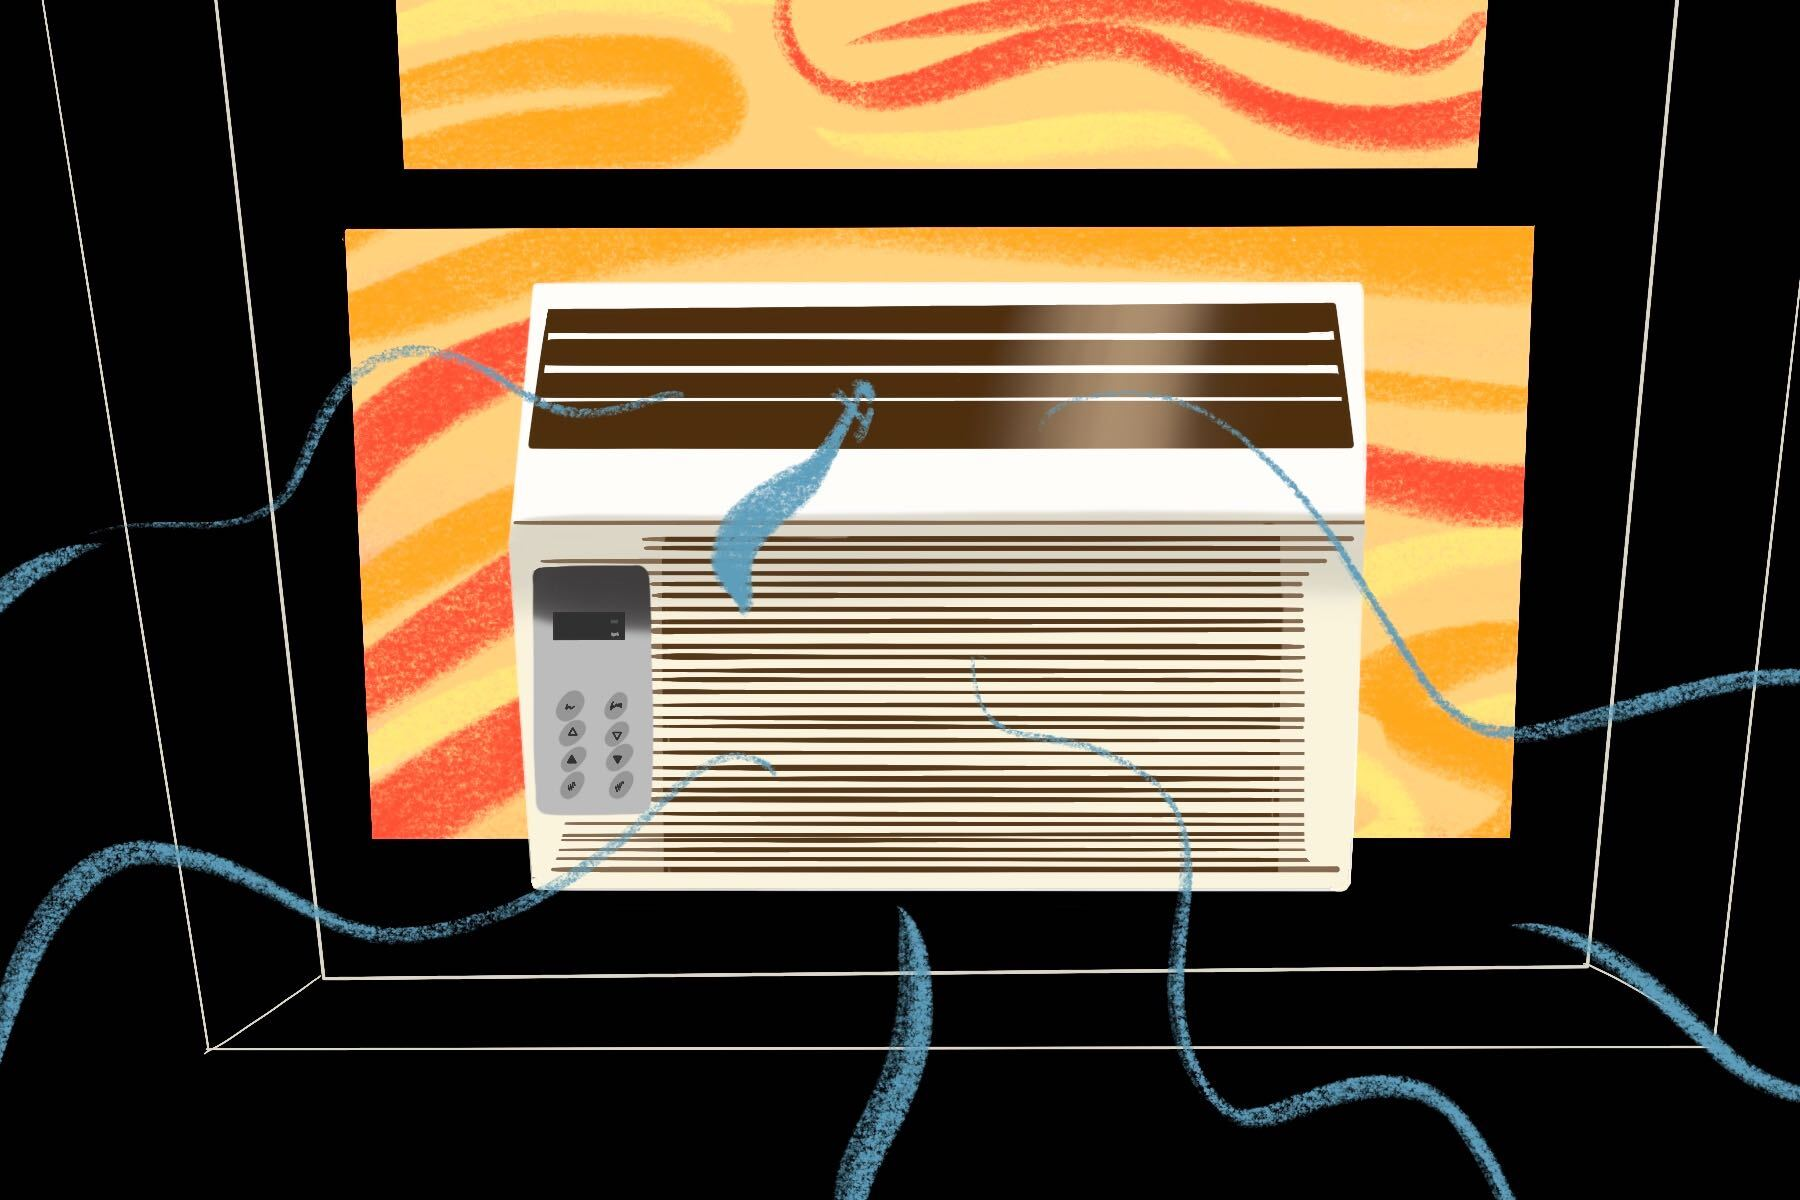 Illustration by Ash Ramirez, Humboldt State University of an air conditioning unit